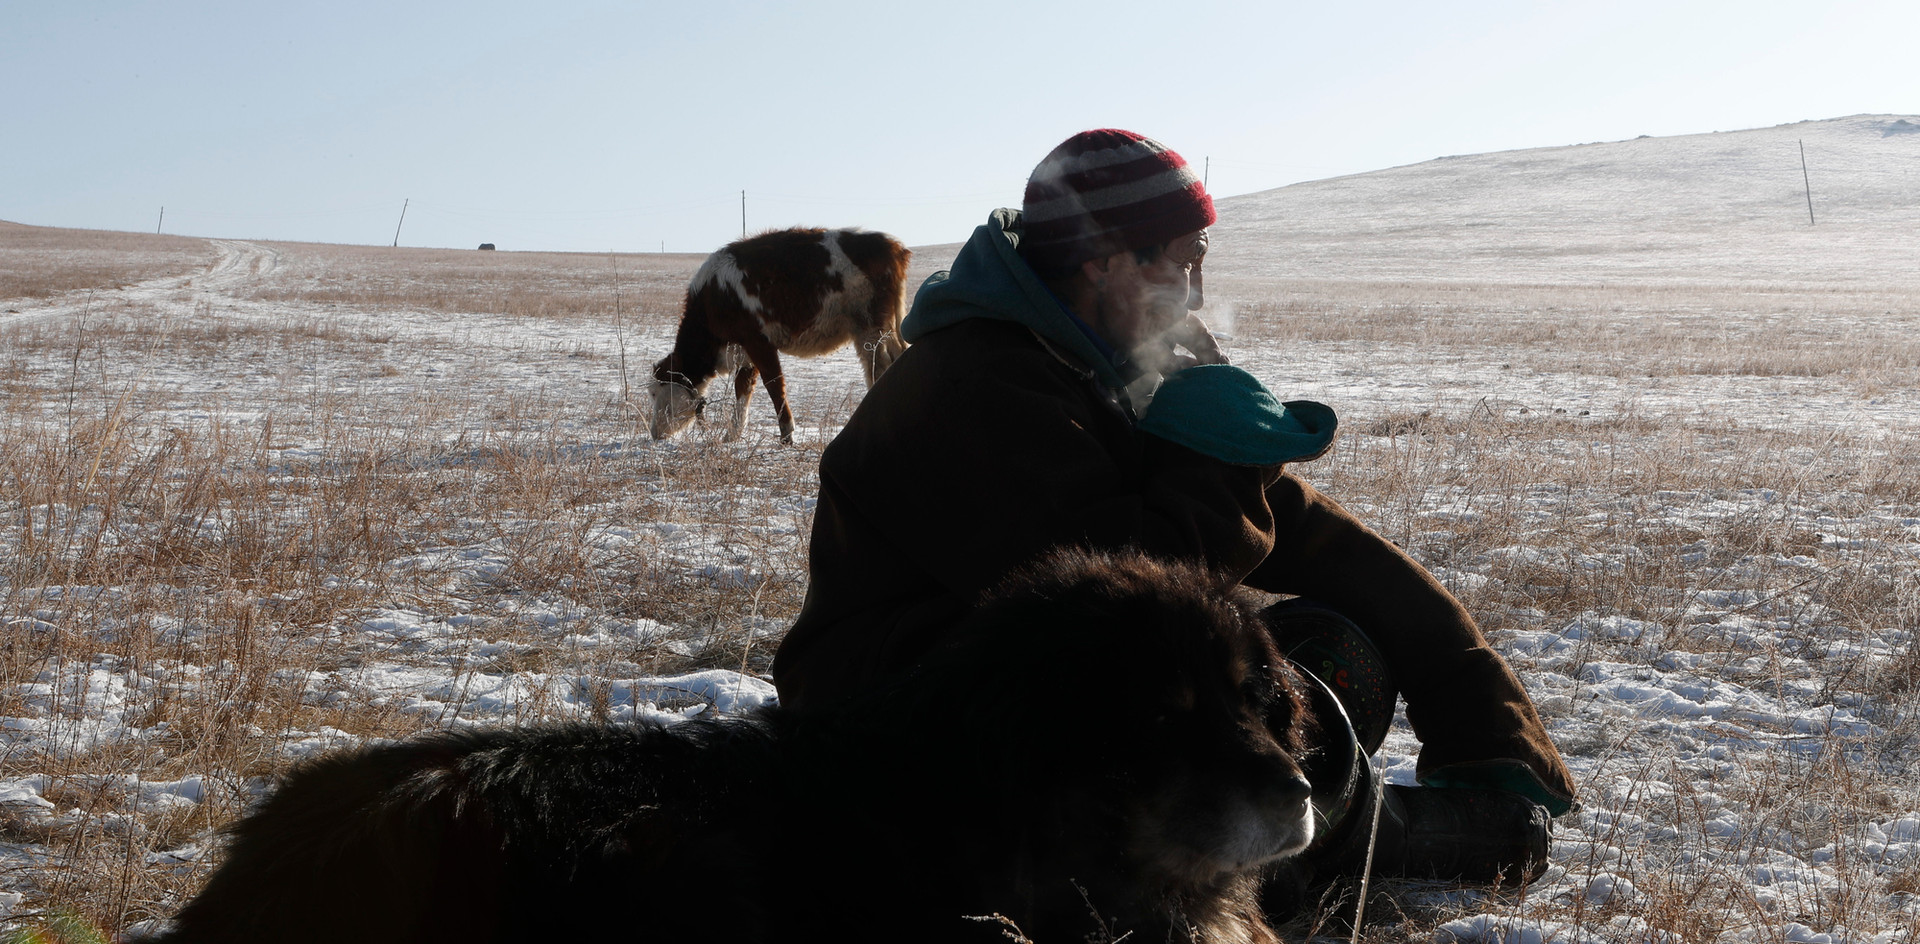 Tsogbayar Khorol, 49 watches his livestock with his herding dog, Arslan, 16, by his side in the Bornuur province, Mongolia.